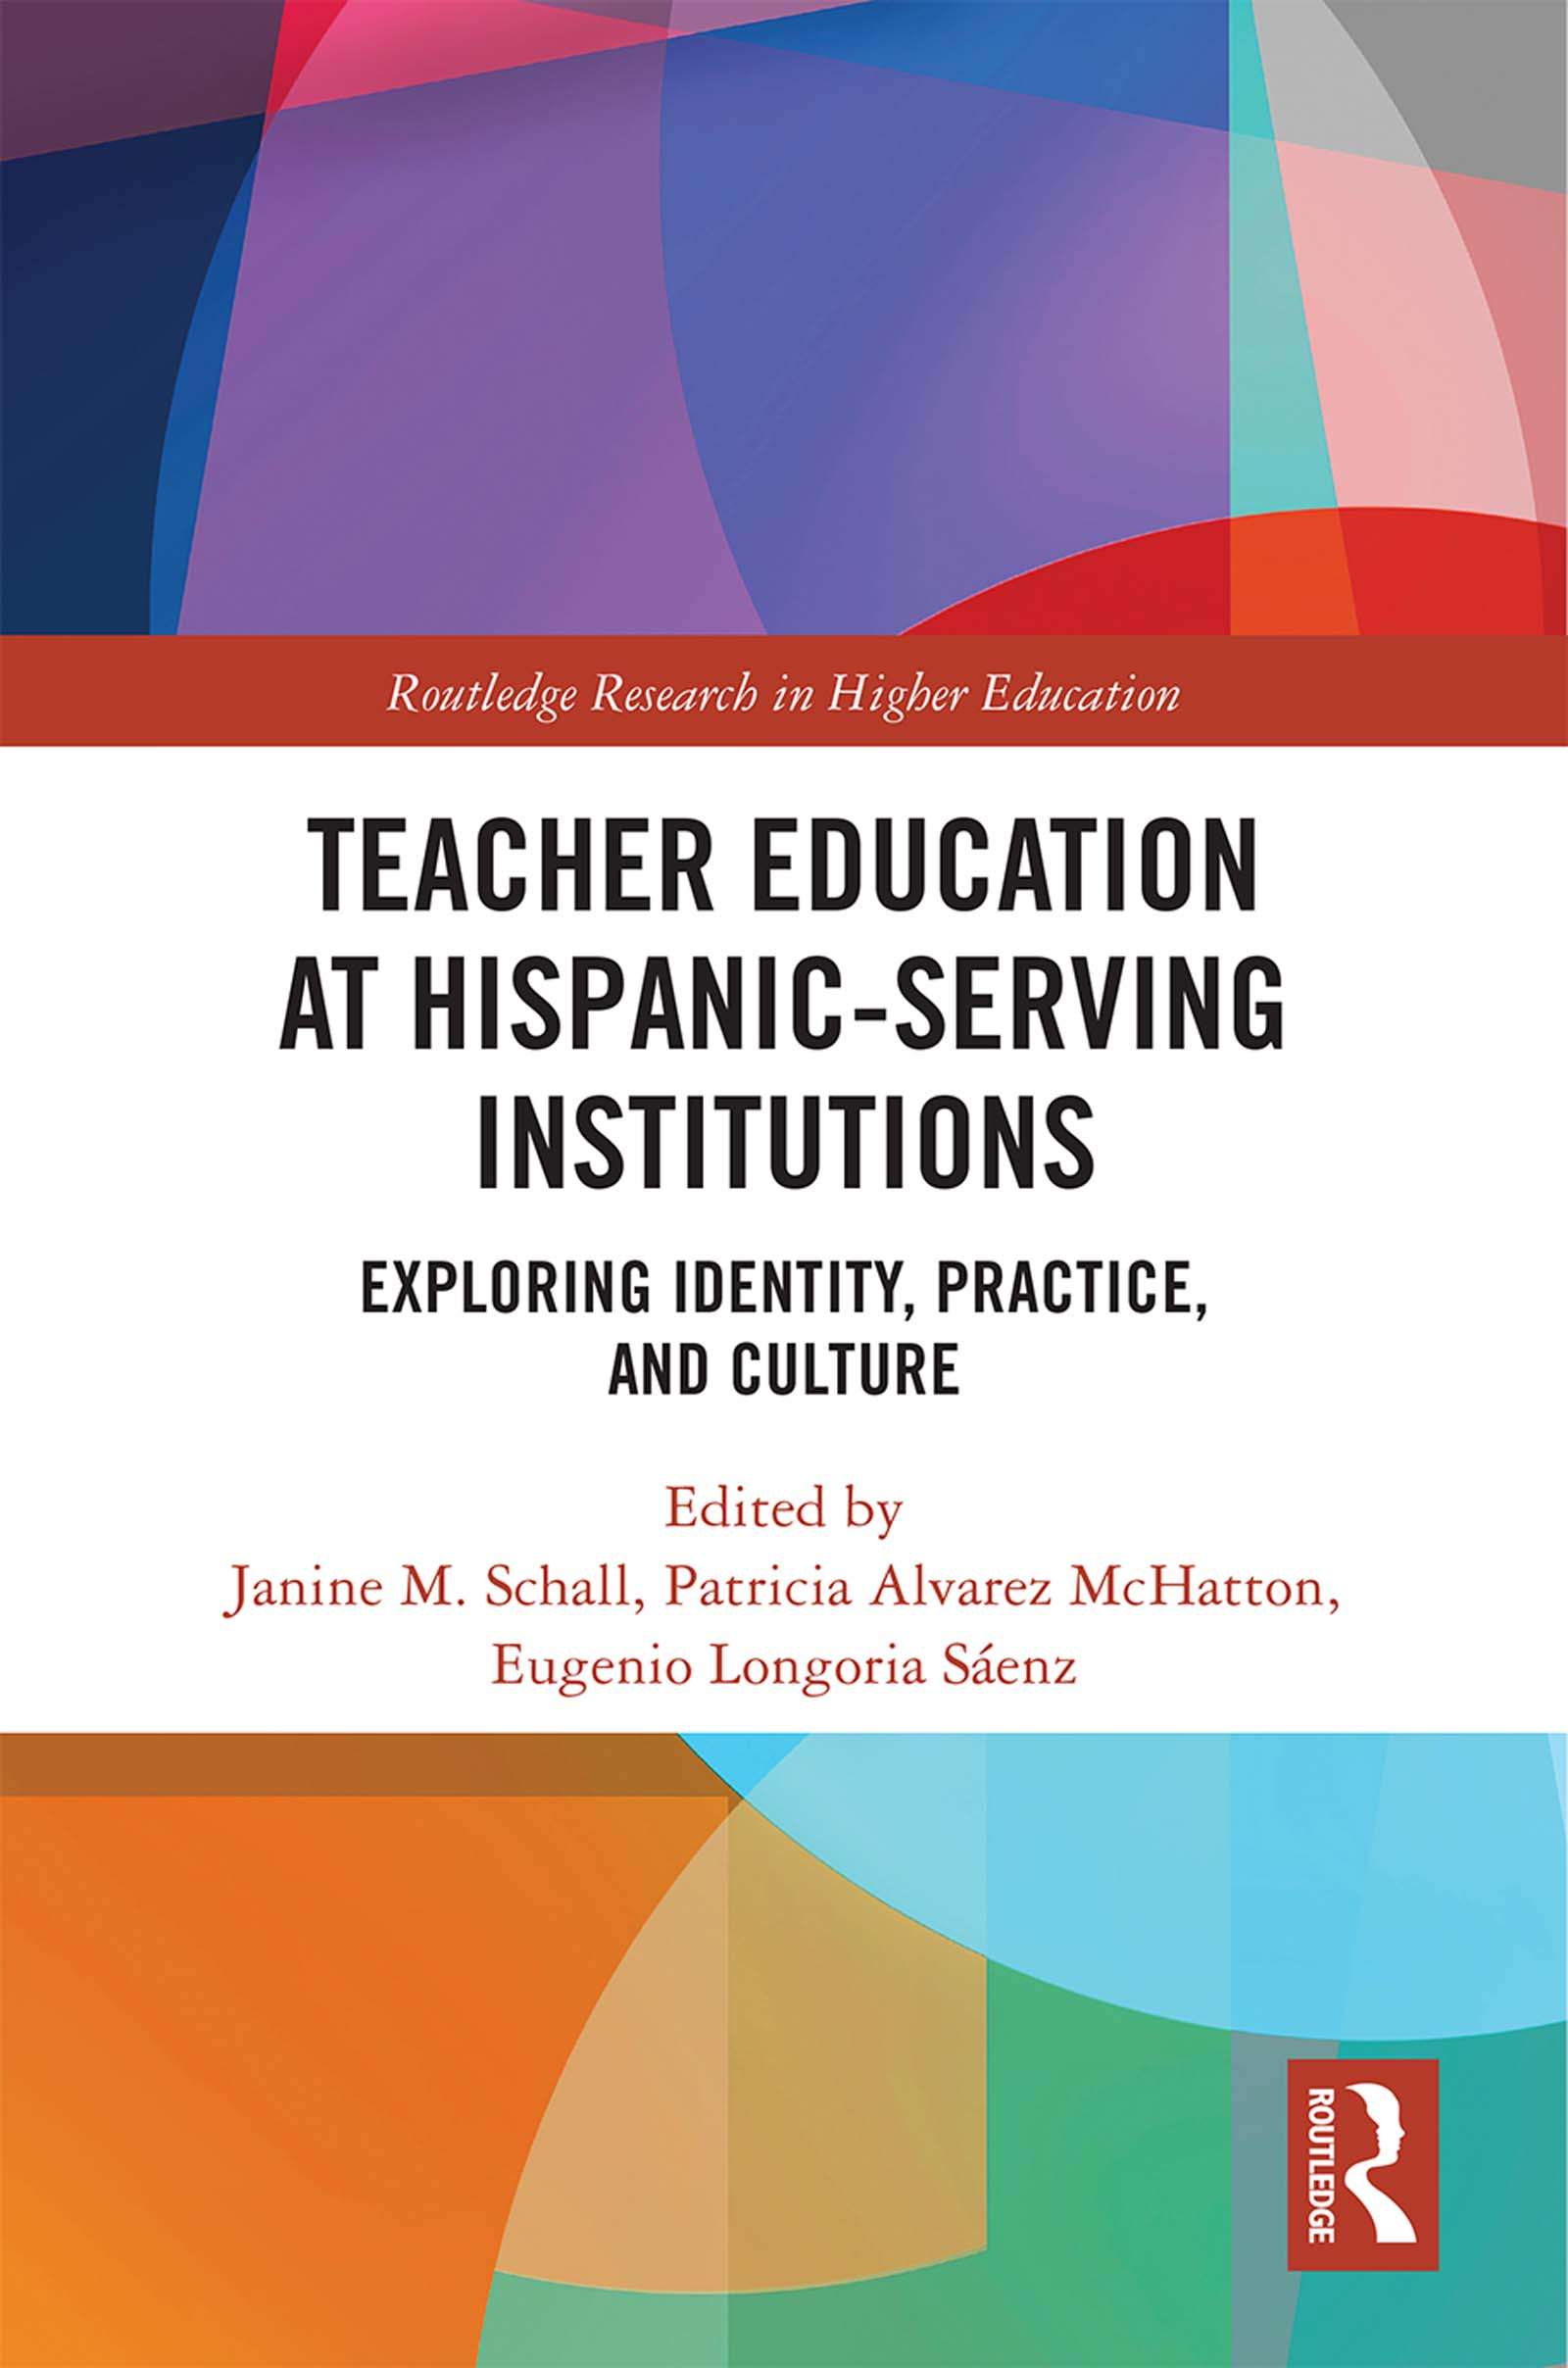 Teacher Education at Hispanic-Serving Institutions: Exploring Identity, Practice, and Culture book cover